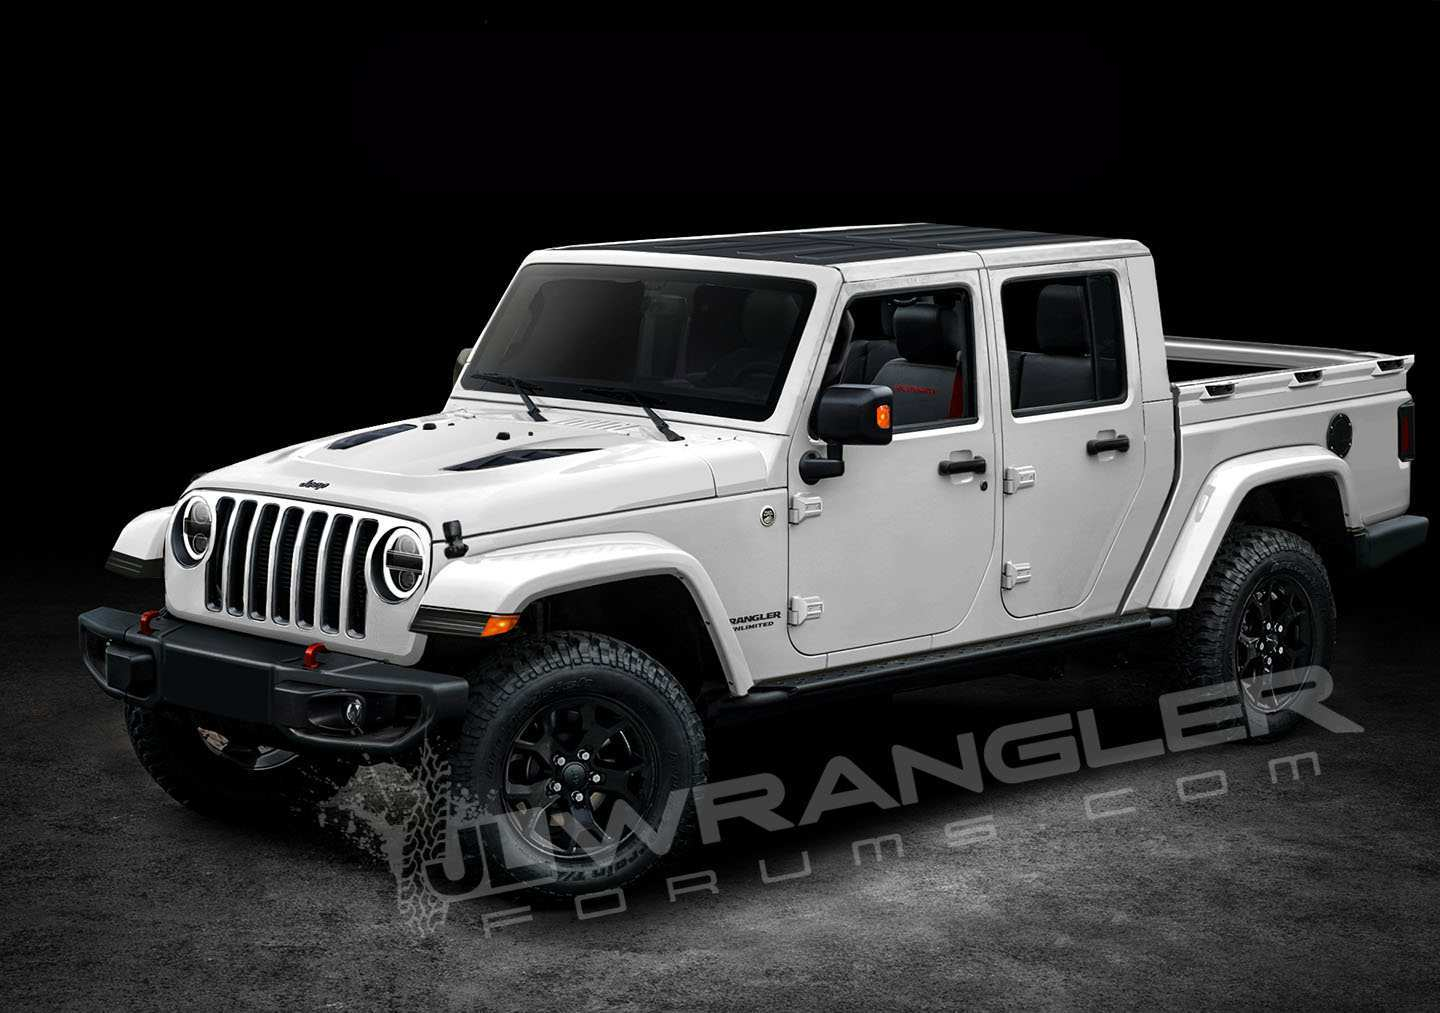 84 All New Jeep Wrangler Pickup 2020 Research New